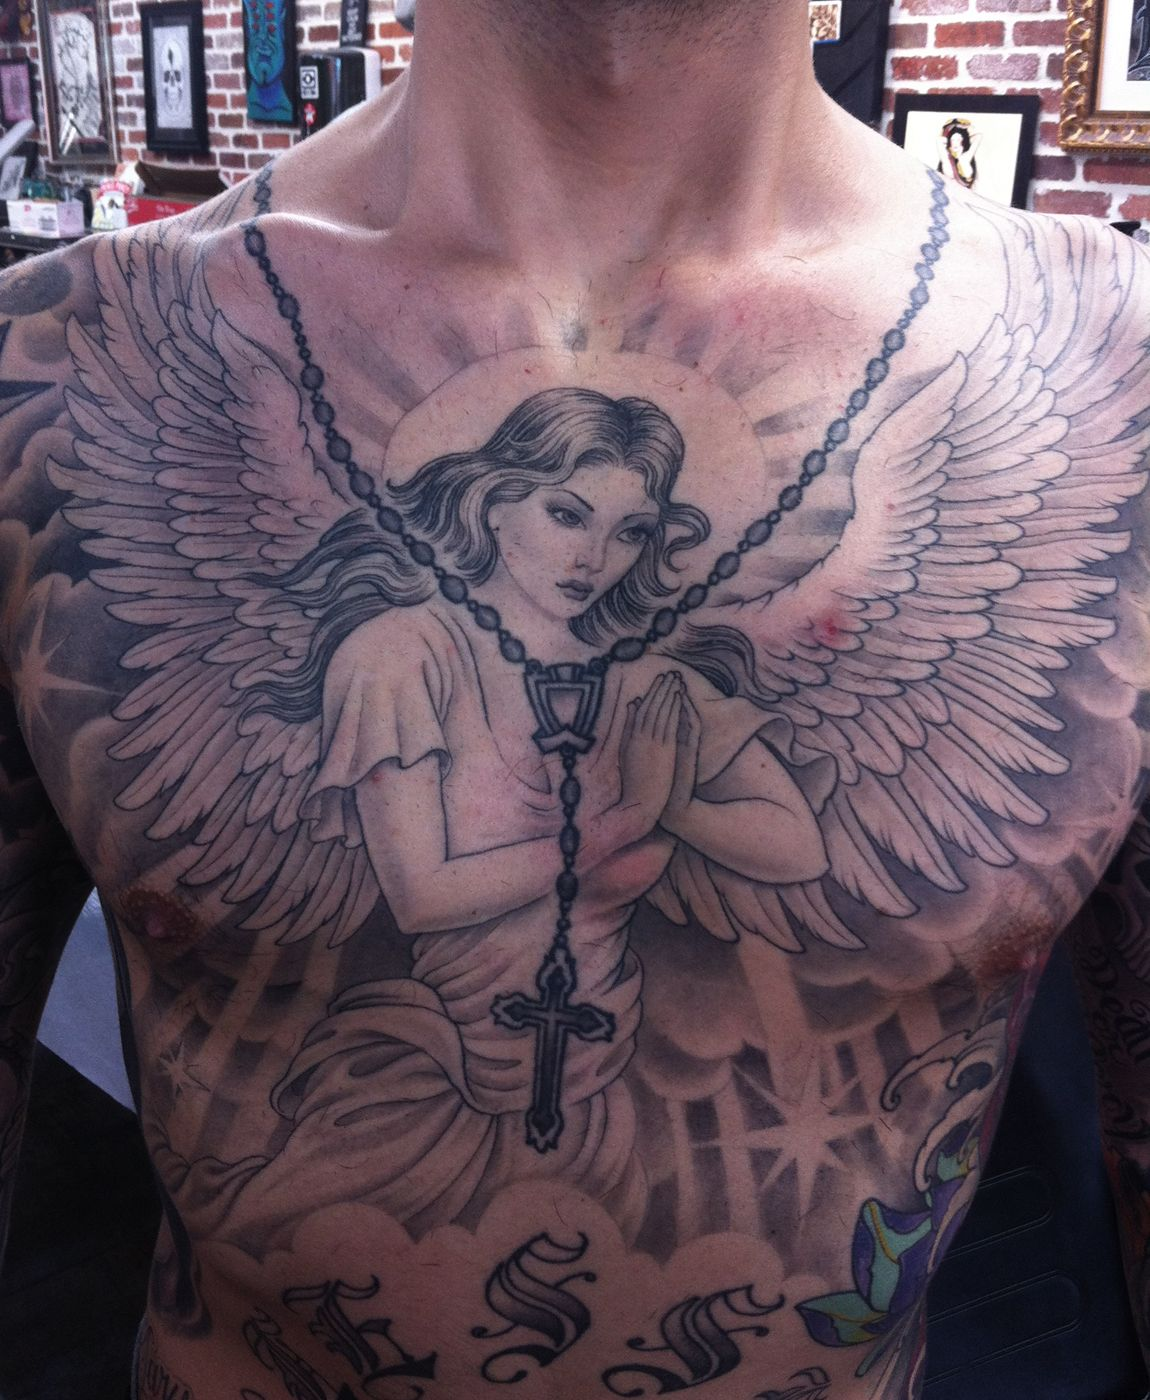 Angel Tattoos On Chest : angel, tattoos, chest, Breathtaking, Angel, Tattoos, Chest, Tattoos,, Tattoo, Designs,, Guardian, Designs